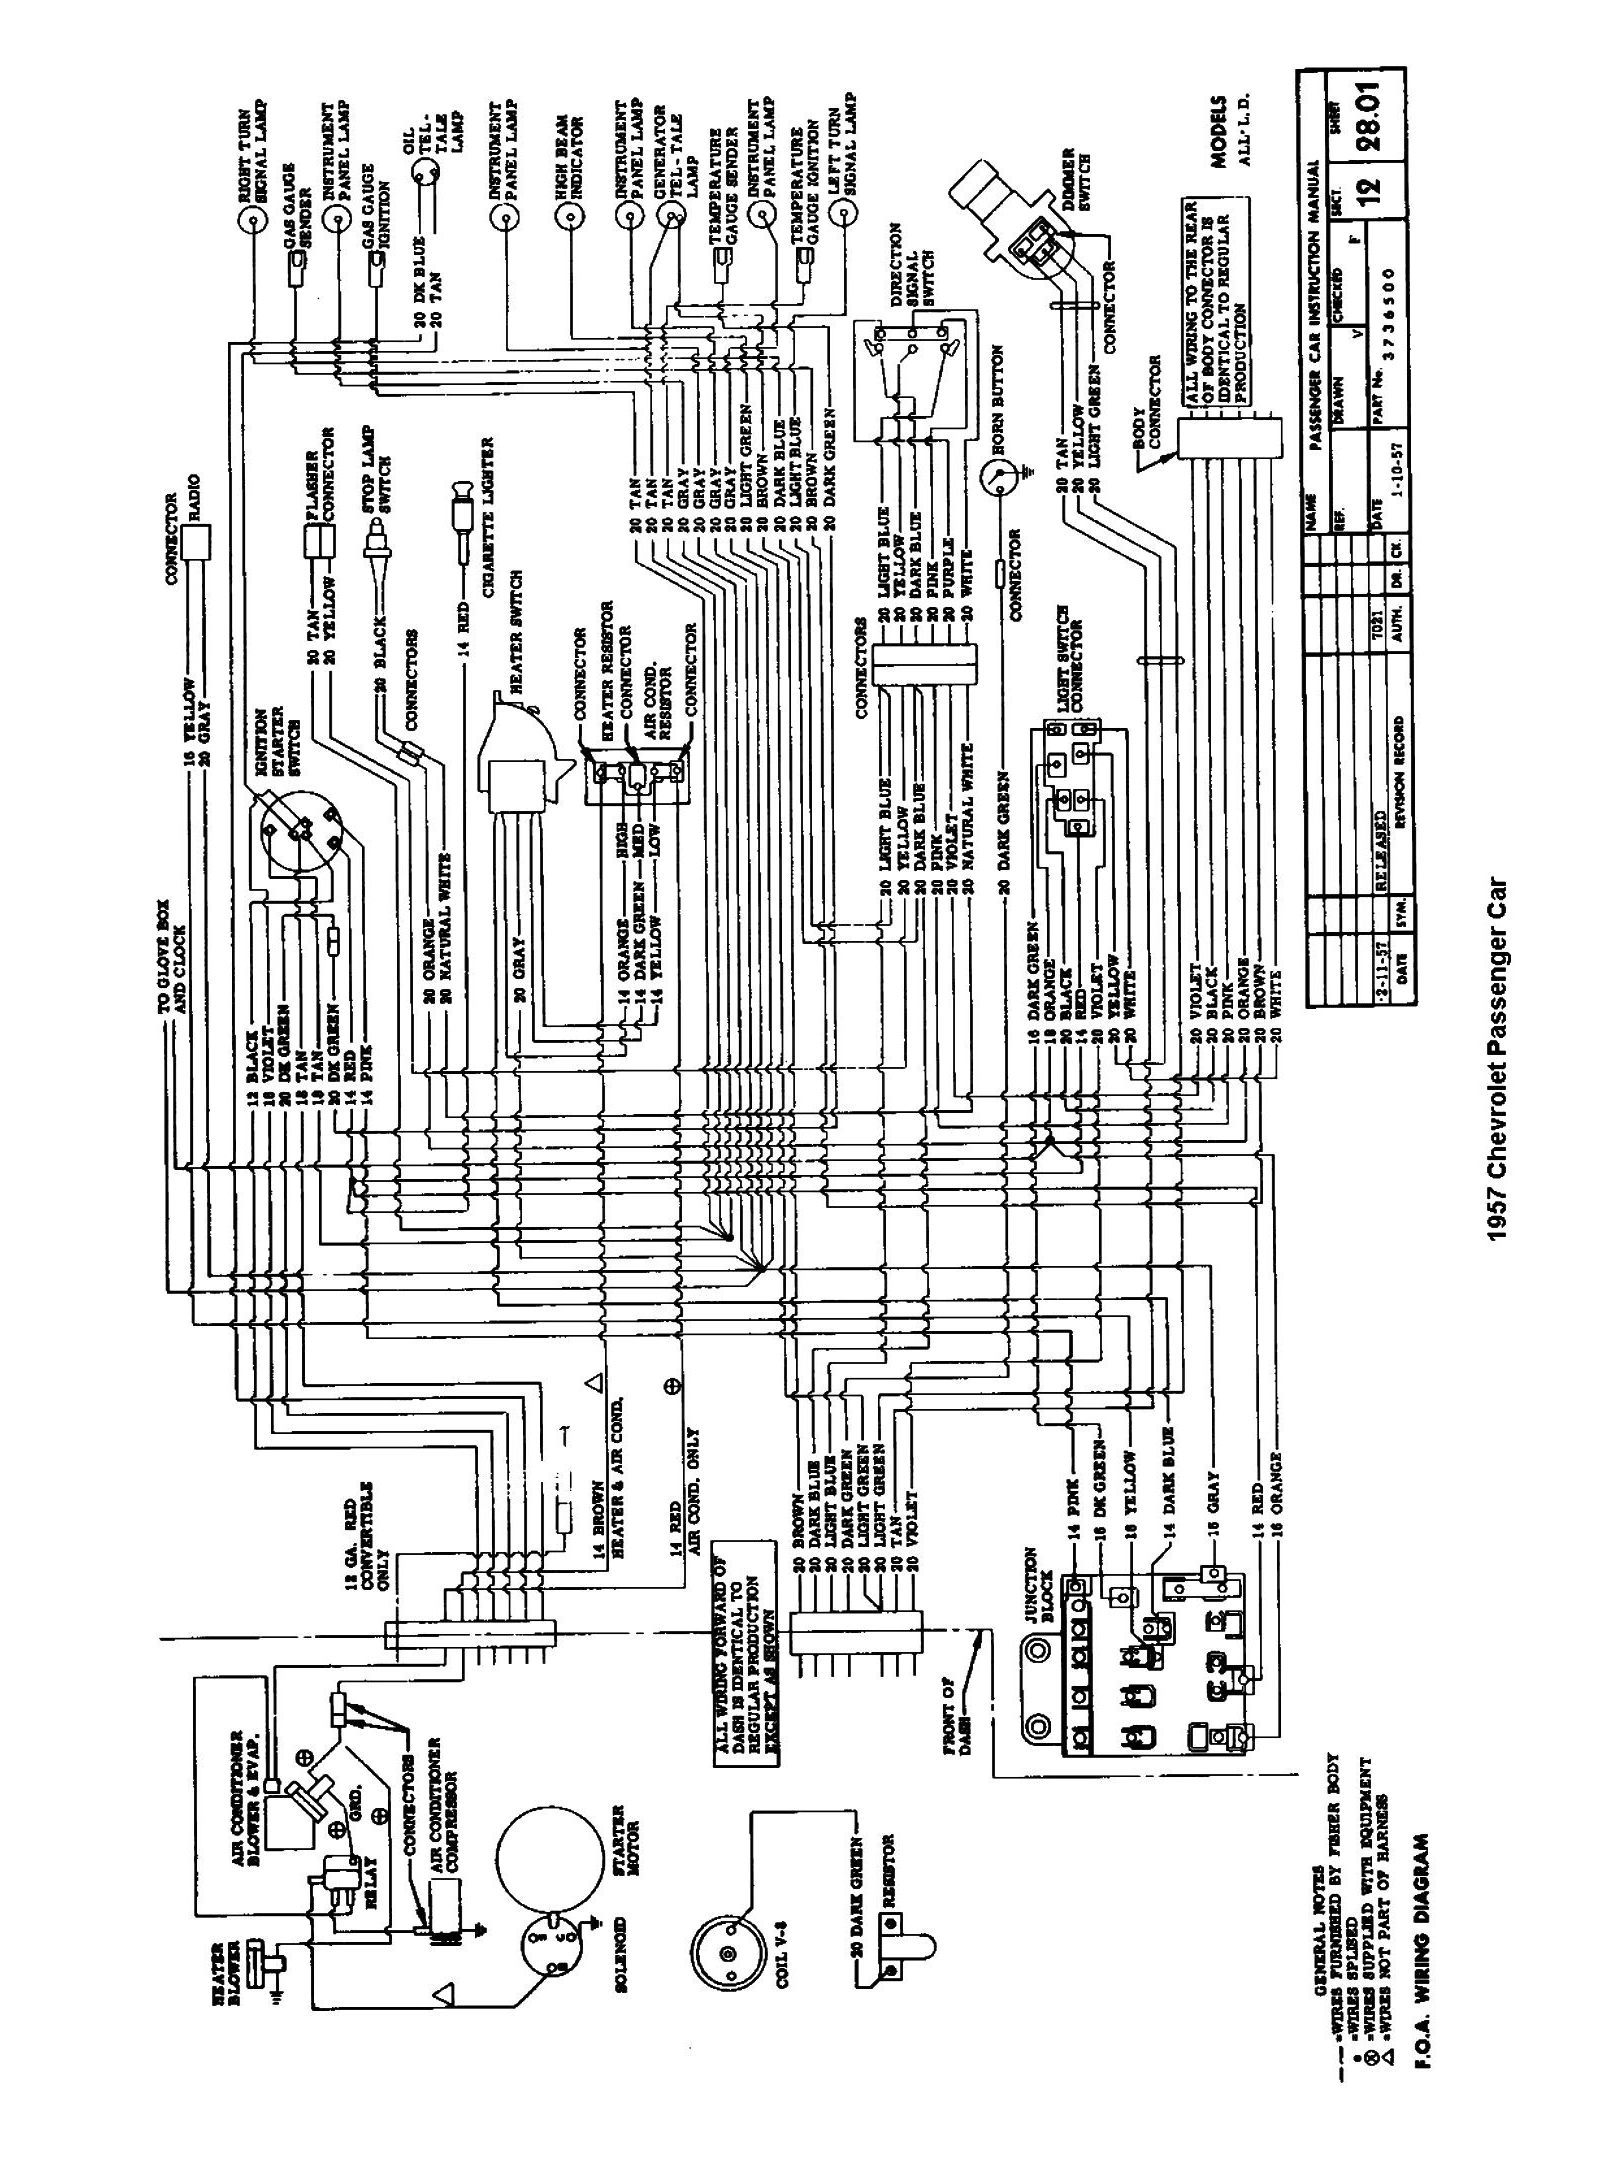 Chevy Turn Wiring Diagrams Diagram Schematics Gm Ignition Switch 2003 Radio 1957 Passenger Car 2